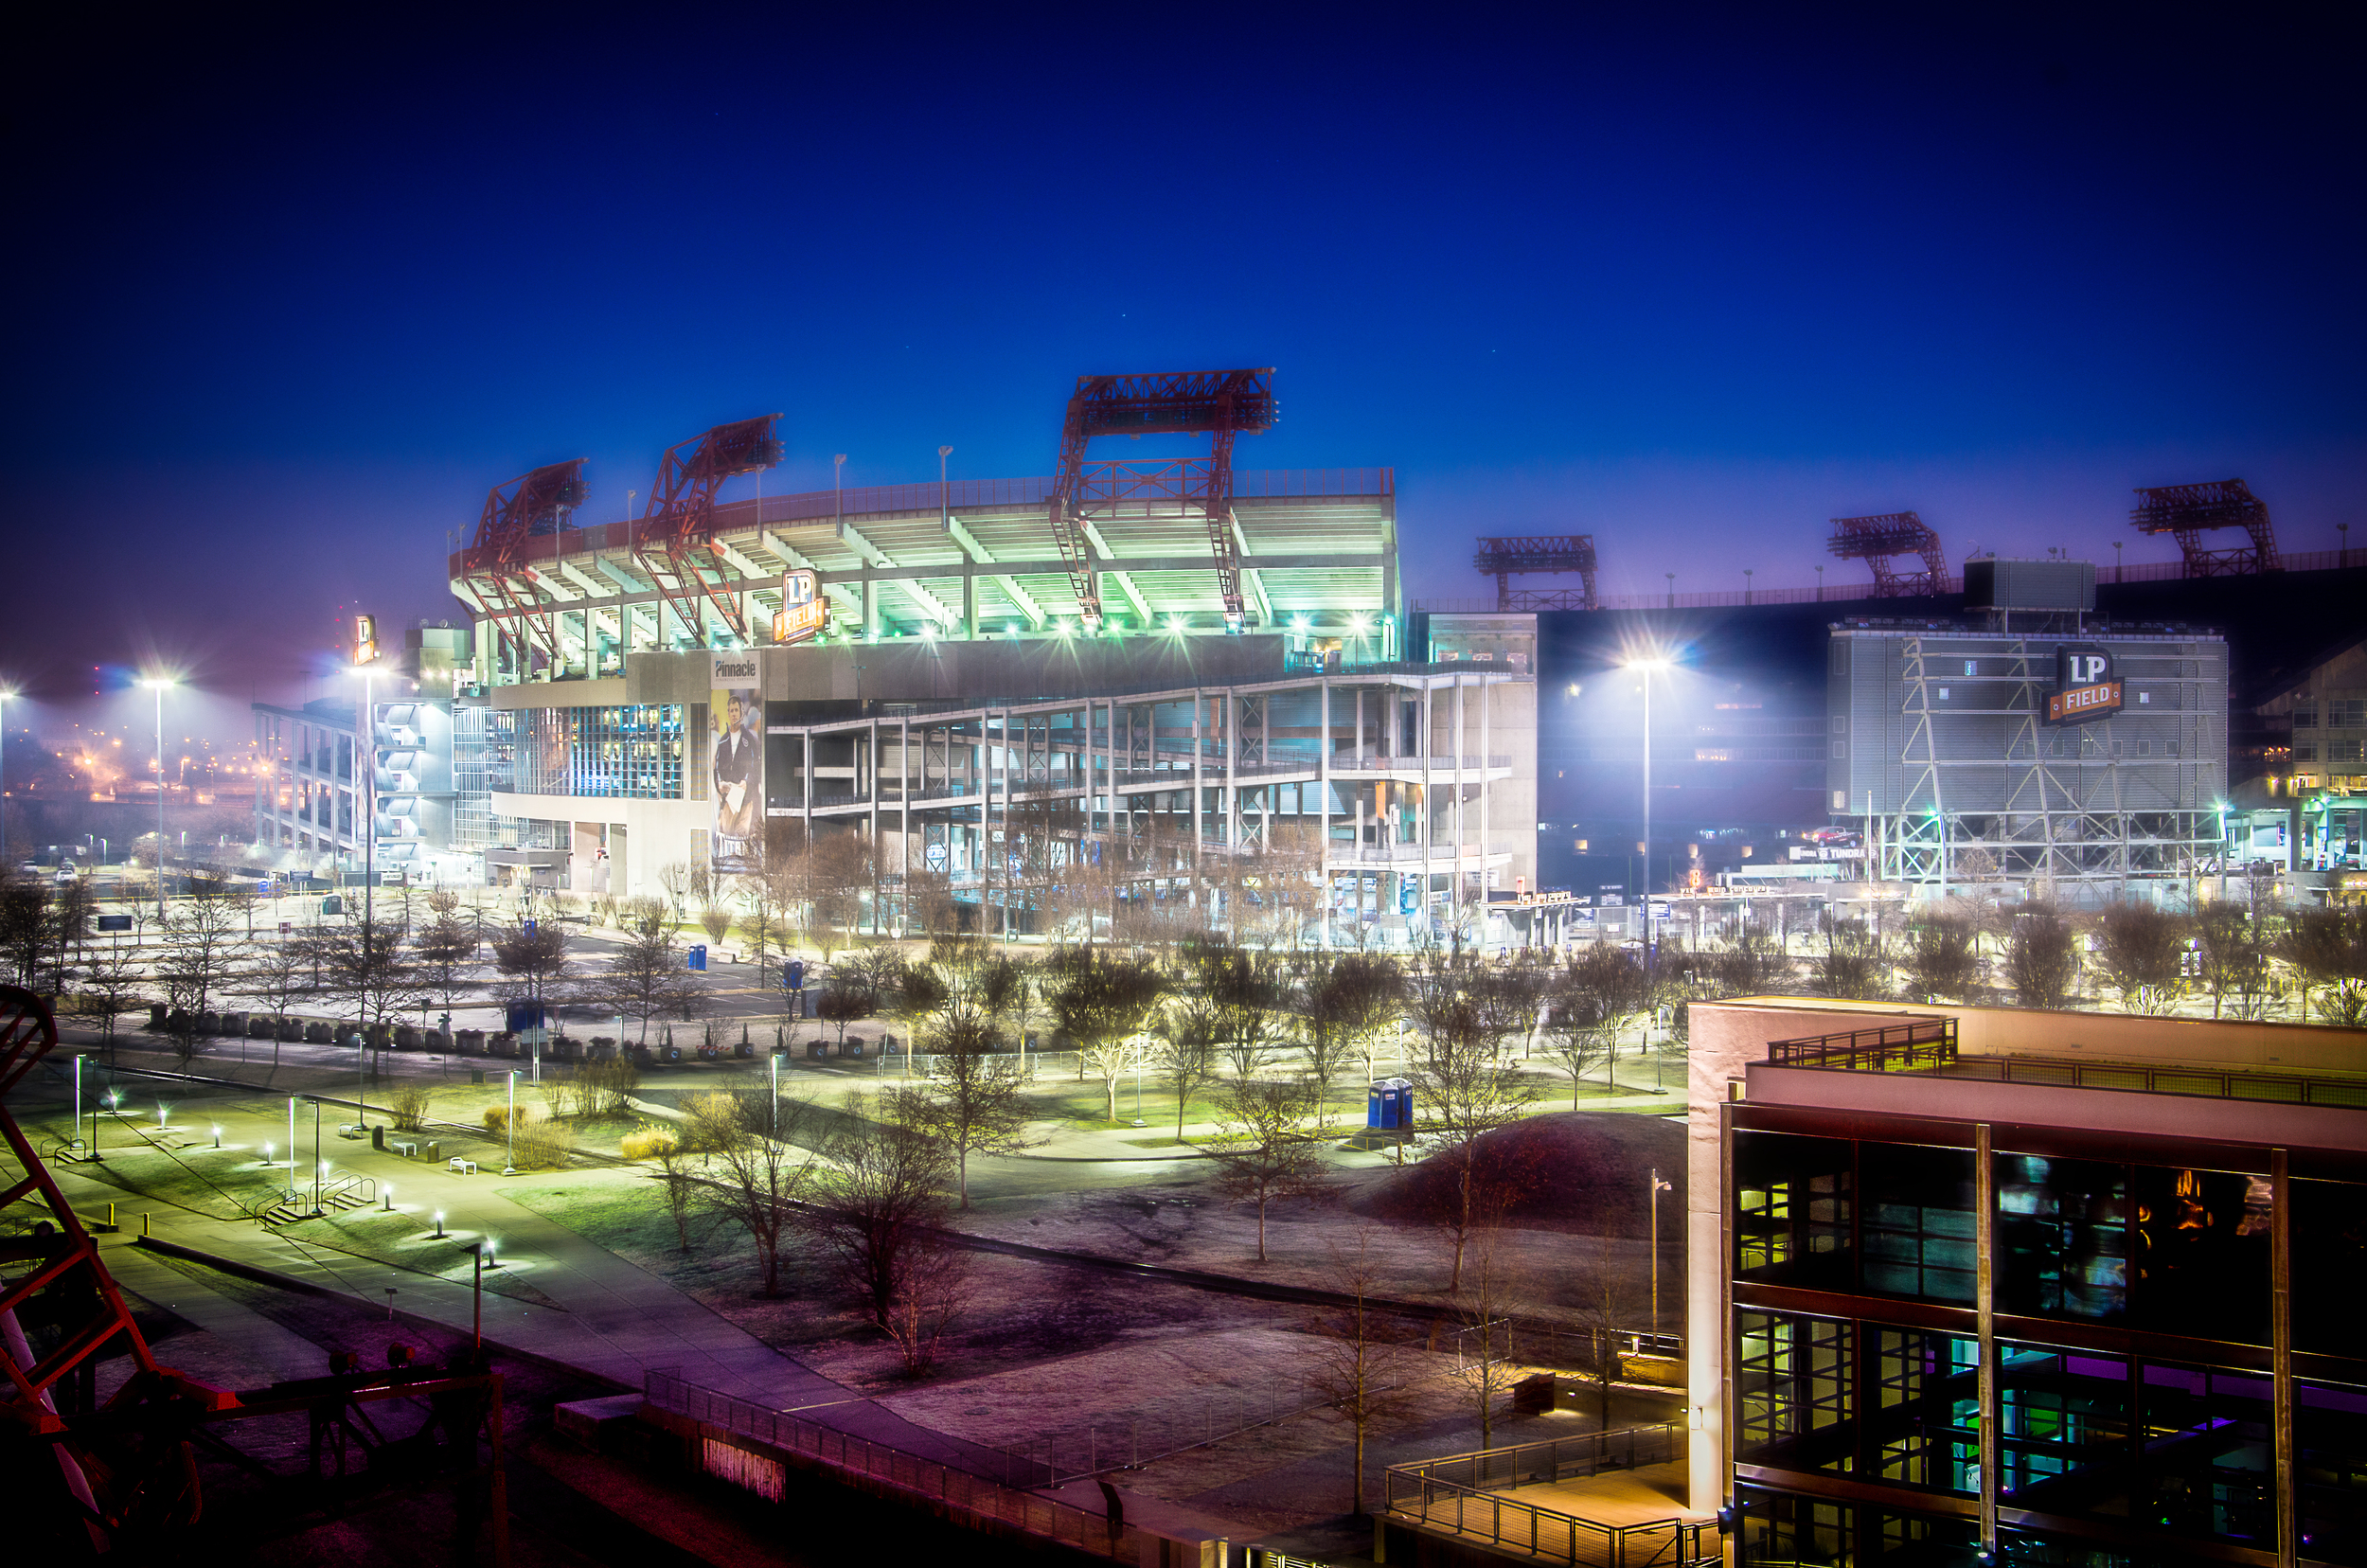 This is a shot of LP Field, Tennessee Titan's stadium from the pedestrian bridge in Nashville, TN January 1, 2014